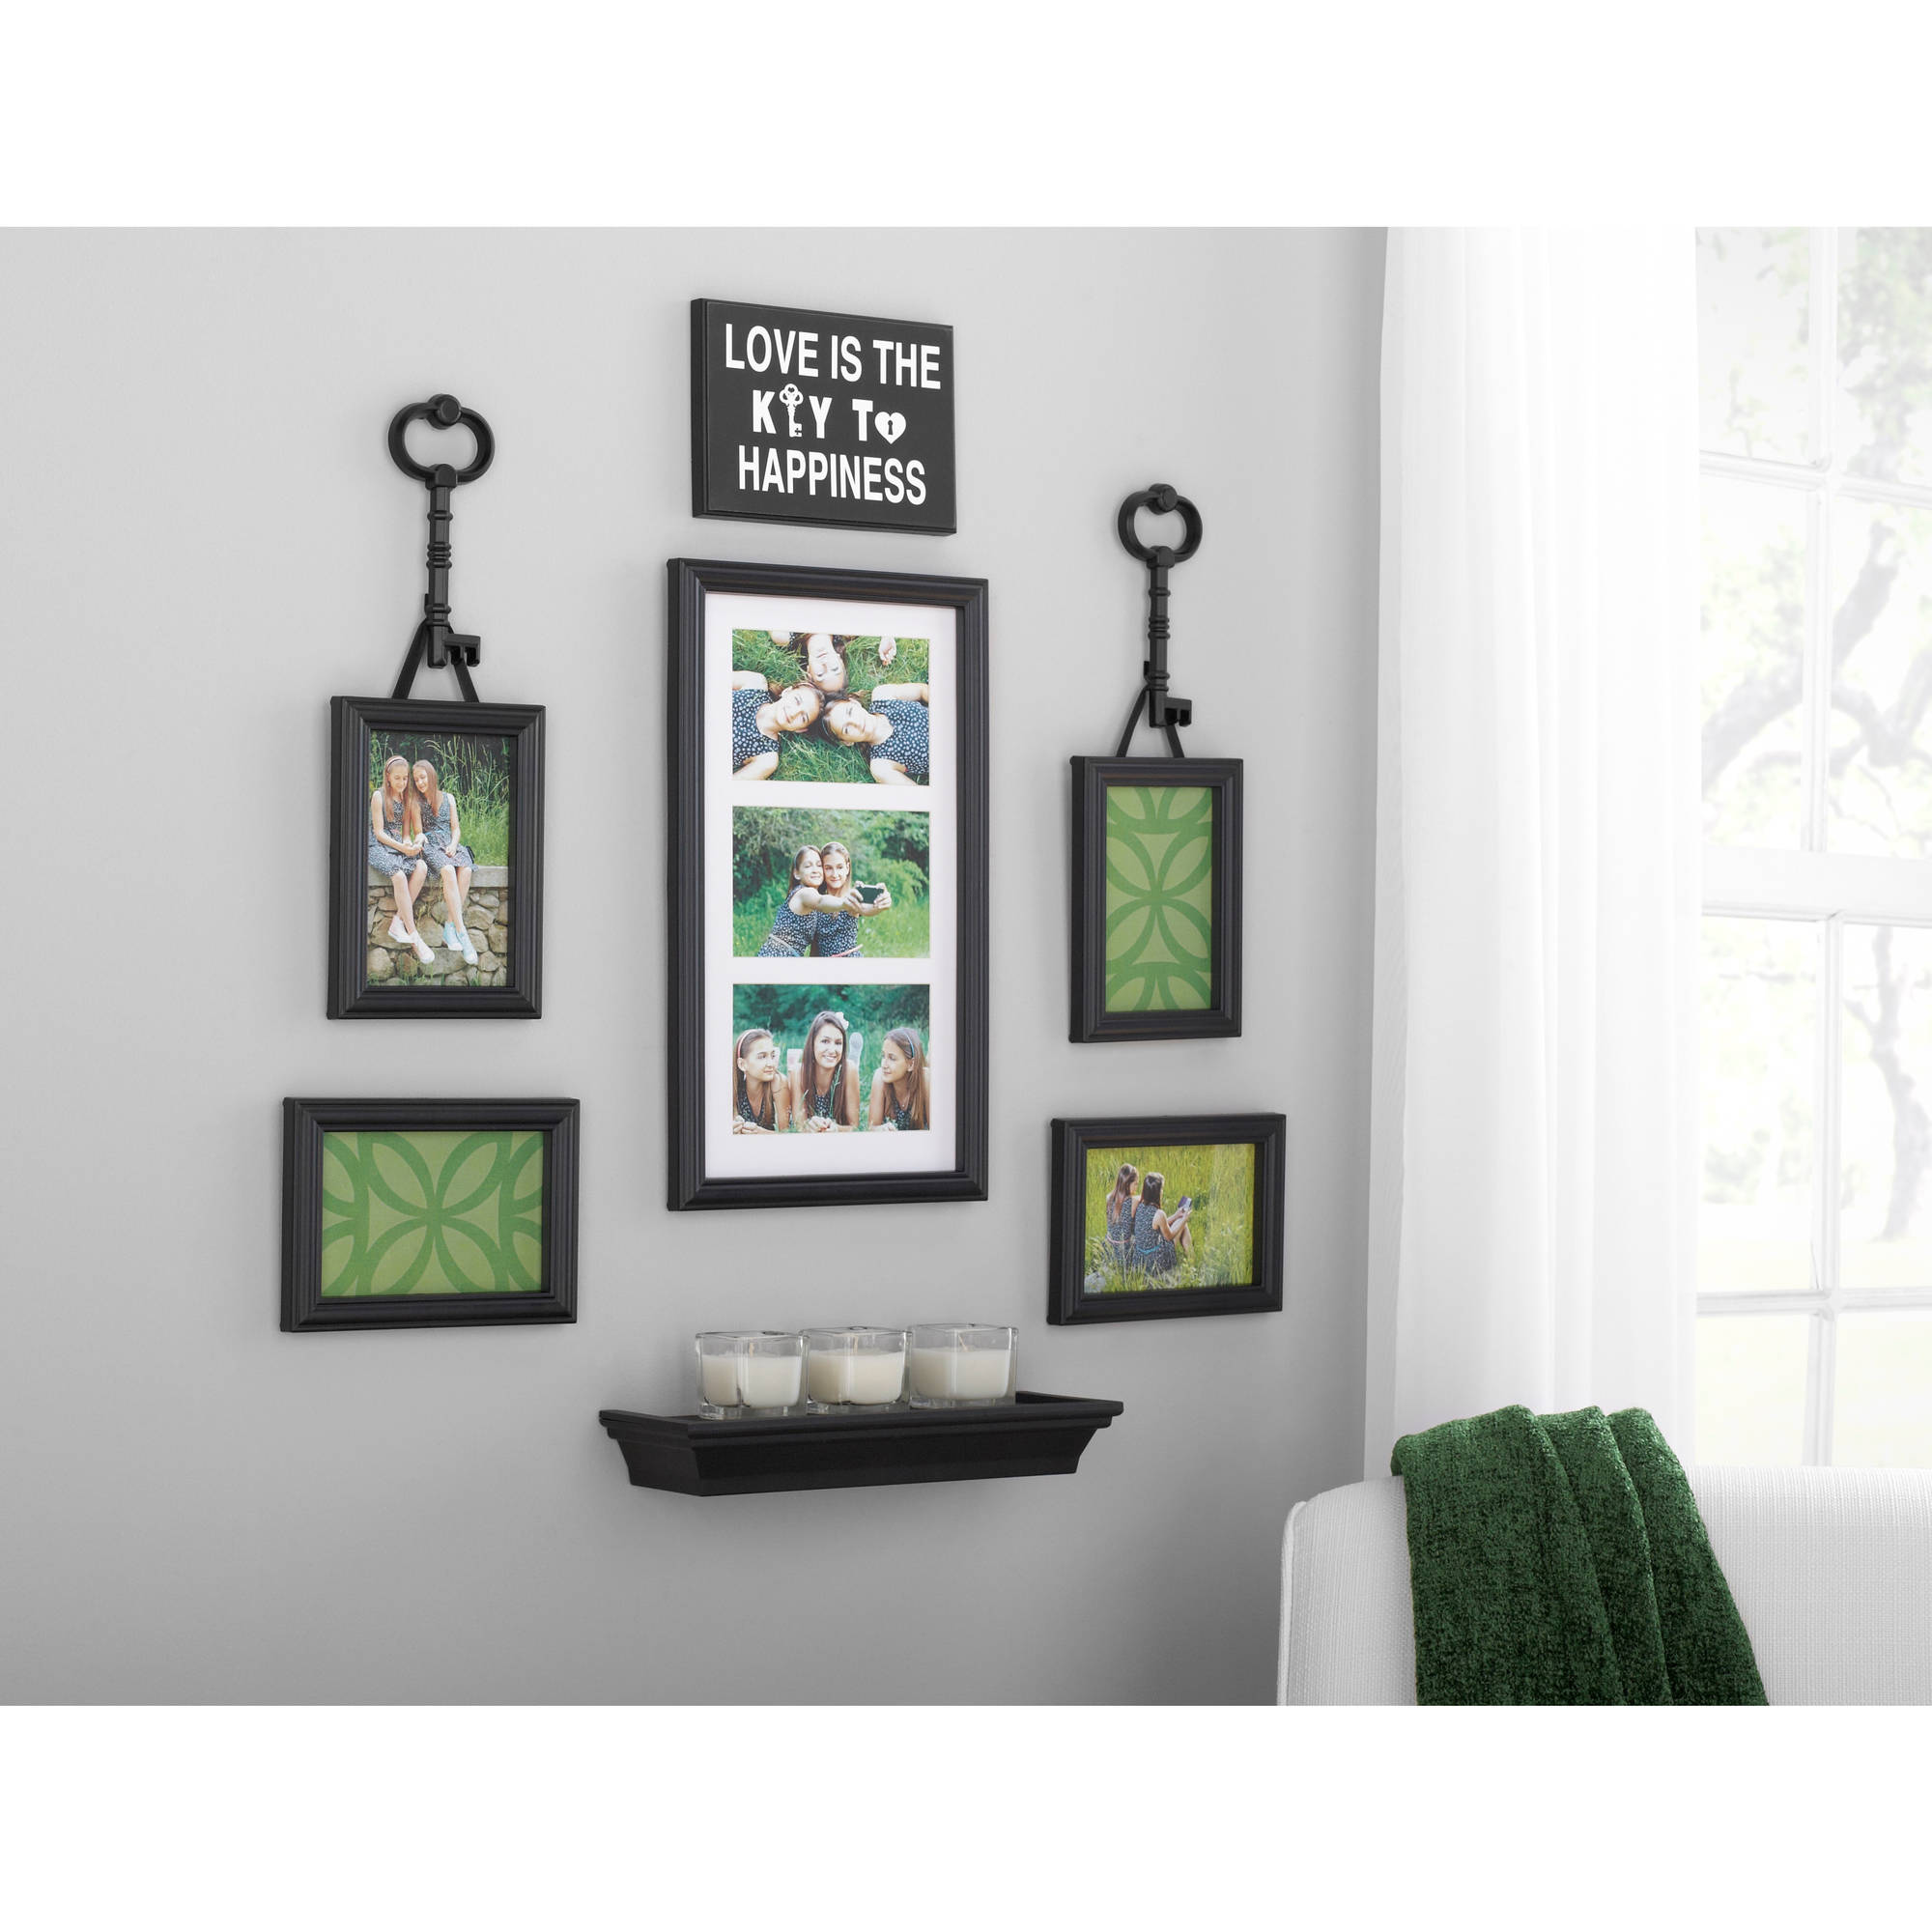 mainstays 9 piece key expression wall frame set walmartcom